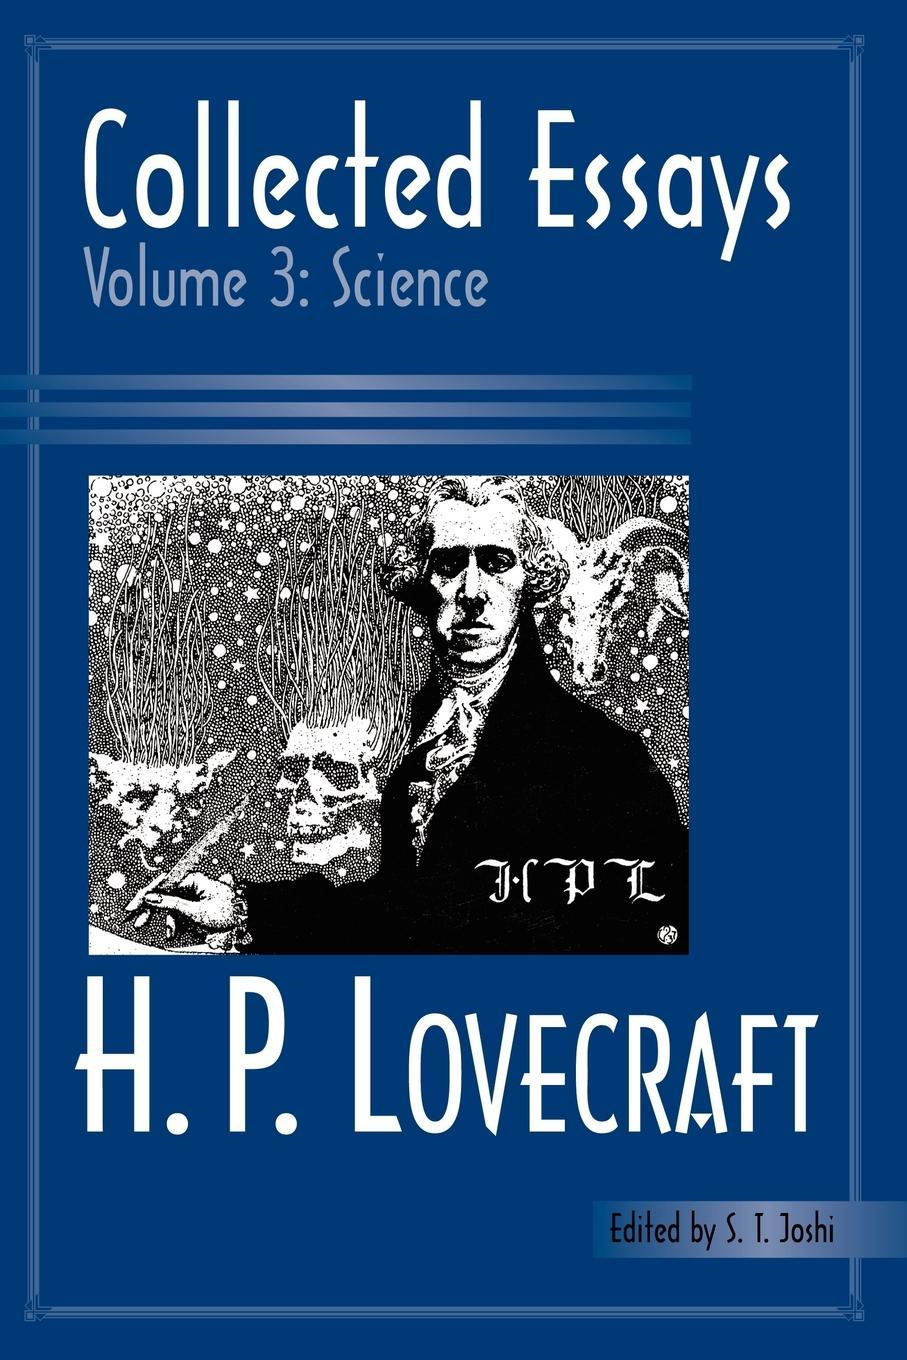 books of h p lovecraft collected essays science 9 books of h p lovecraft